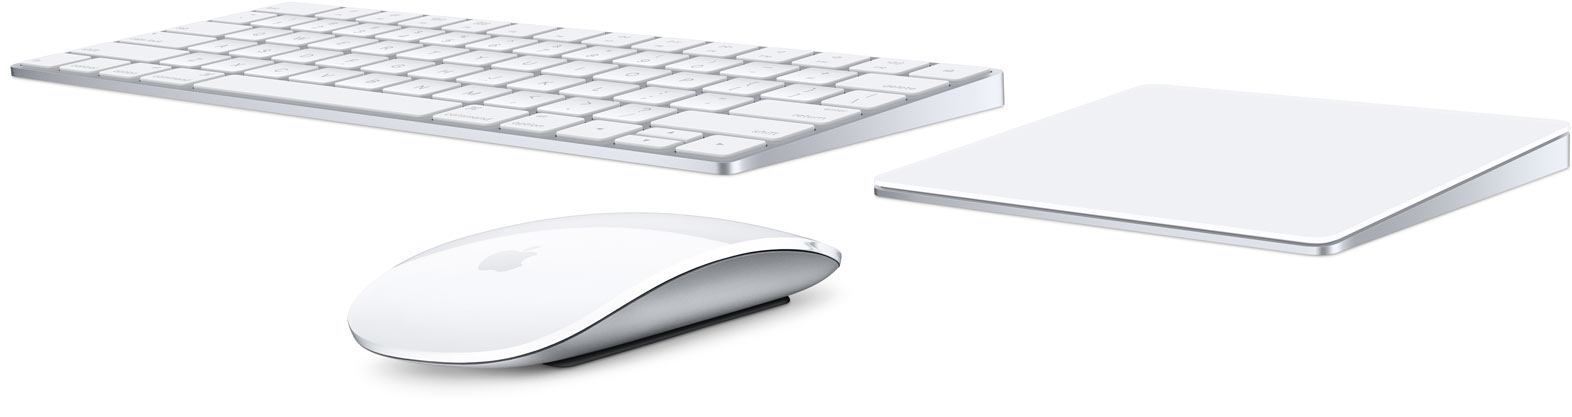 apple-magic-keyboard-mouse-2-trackpad-2-131015